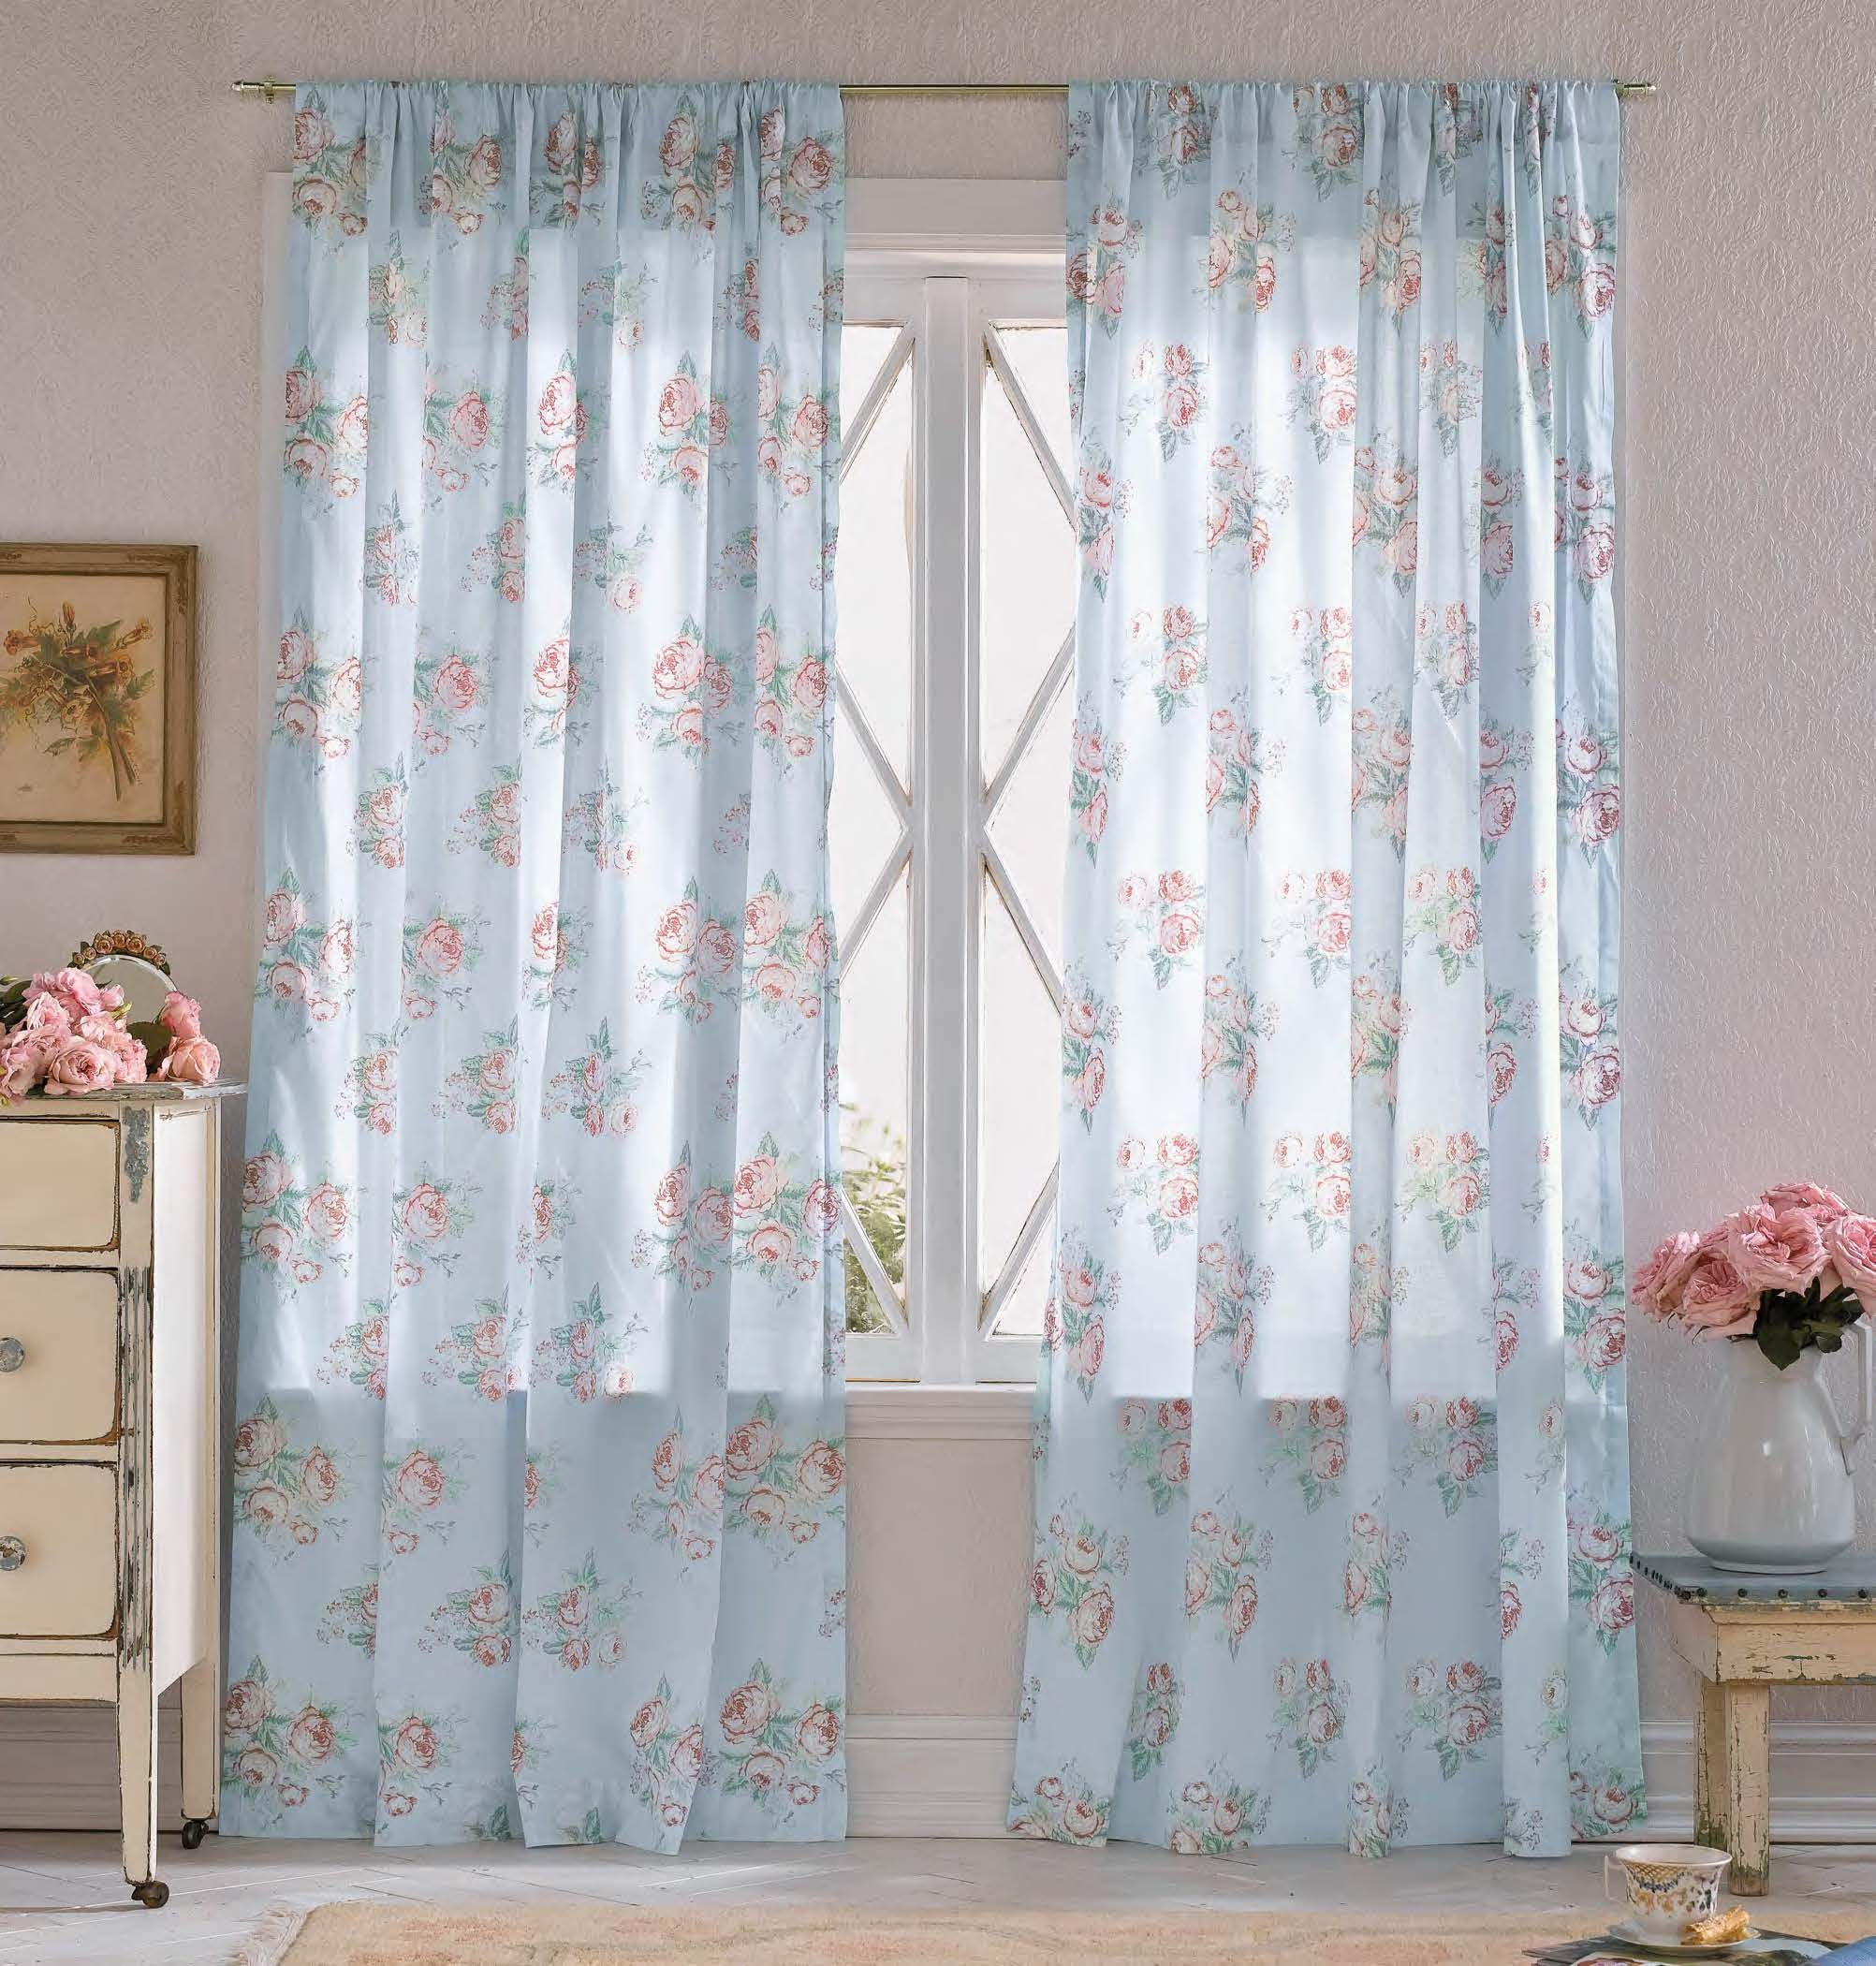 Simply Shabby Chic Voile Window Panel Cabbage Rose $19 99 at